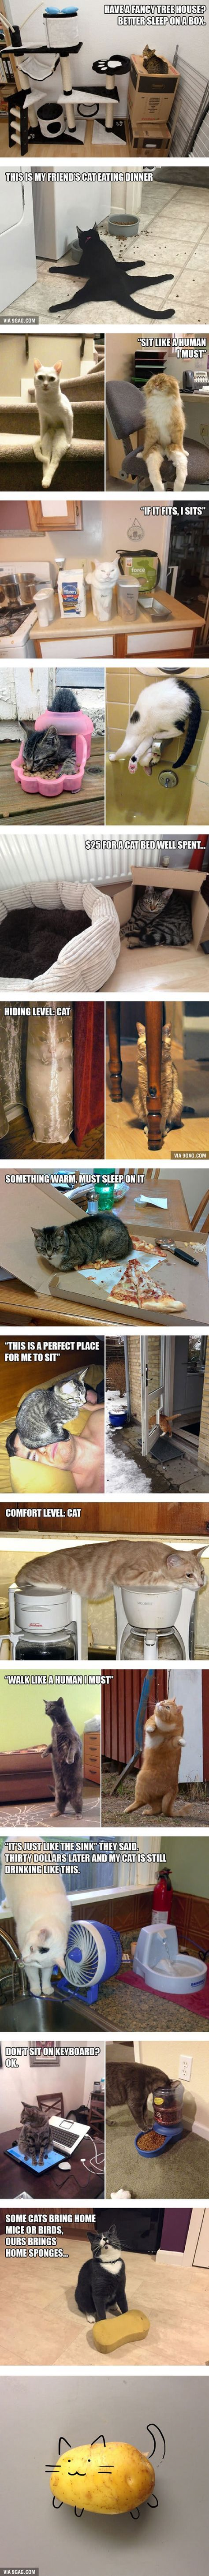 20 Funny Examples of Cat Logic  too funny, I can't even